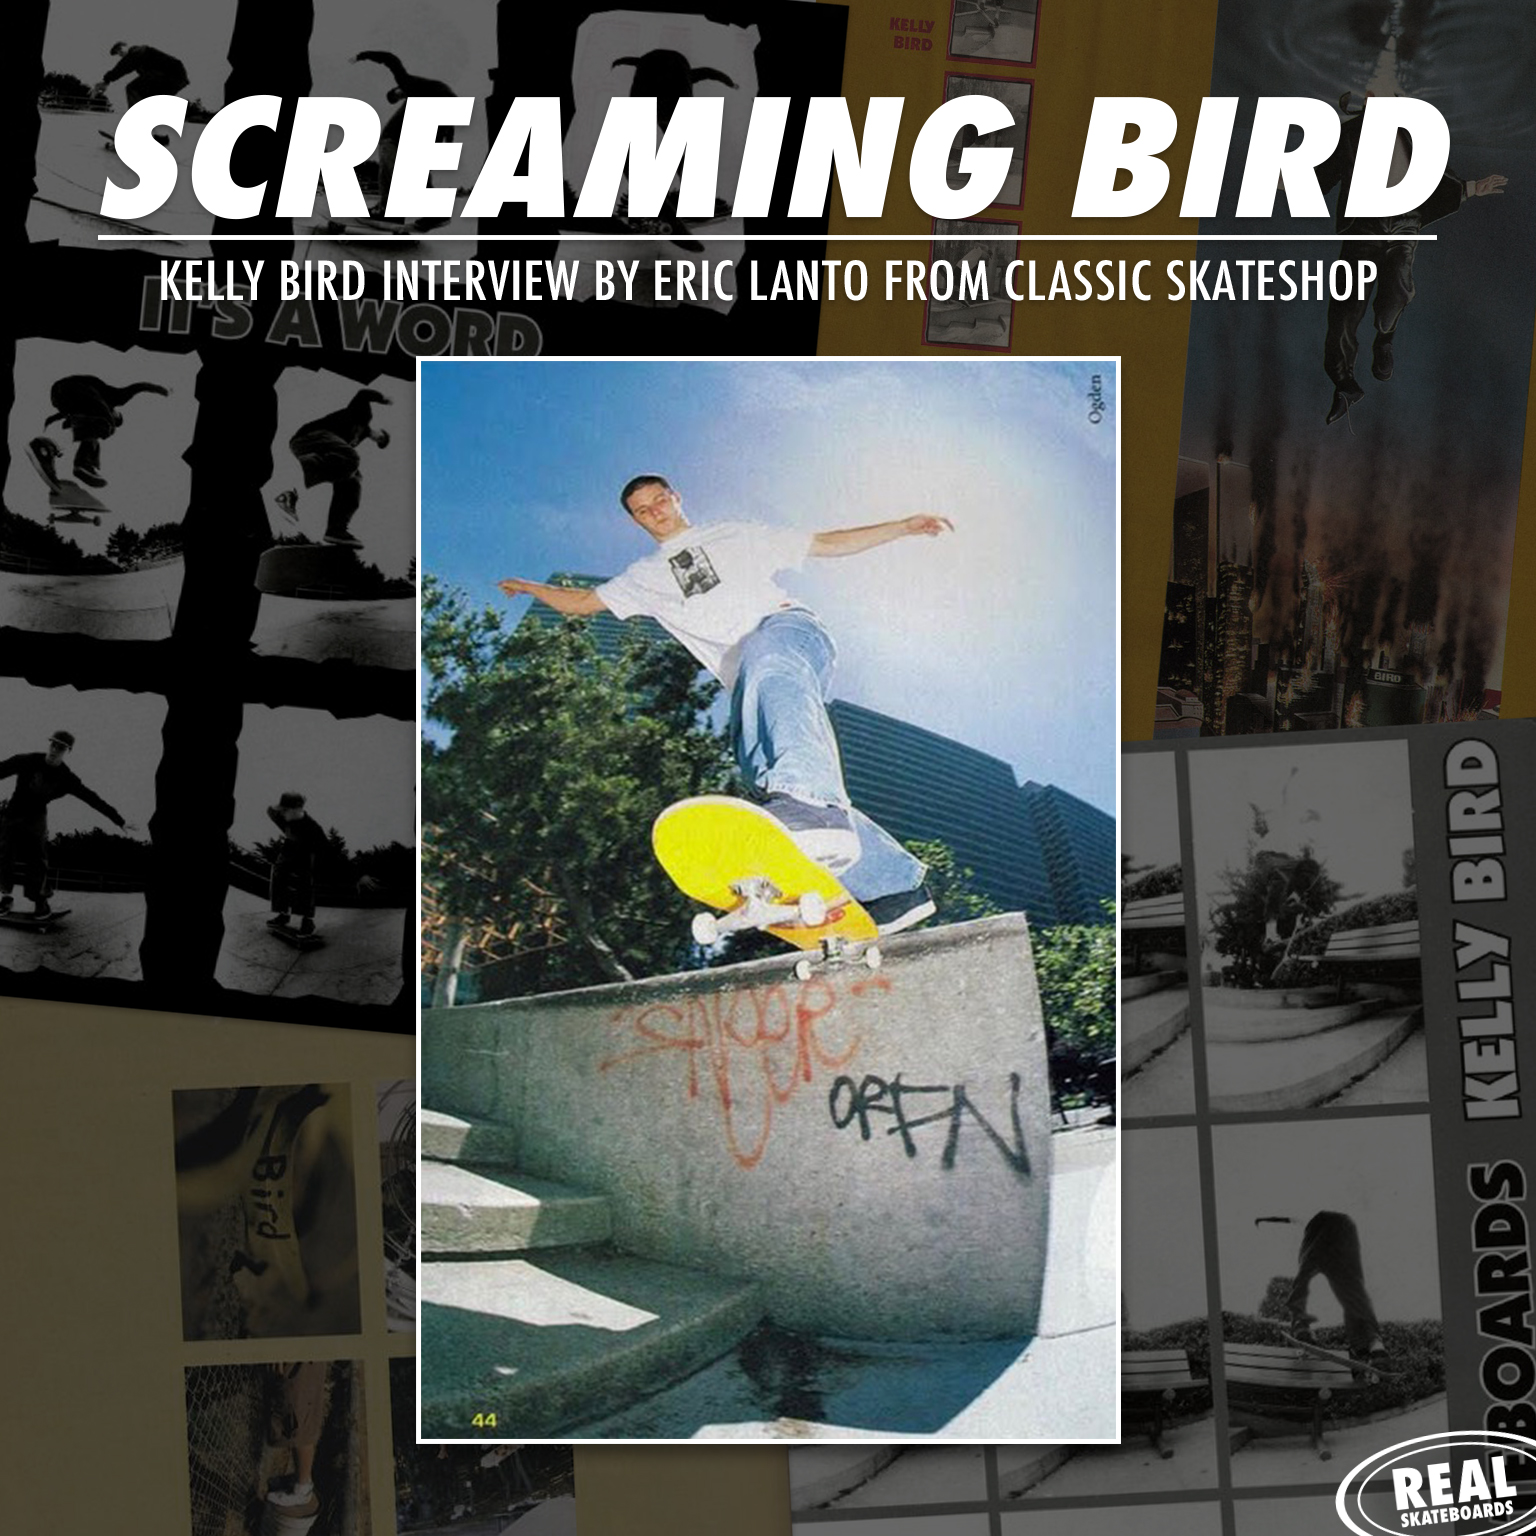 rs-screaming-bird-release-image-ig